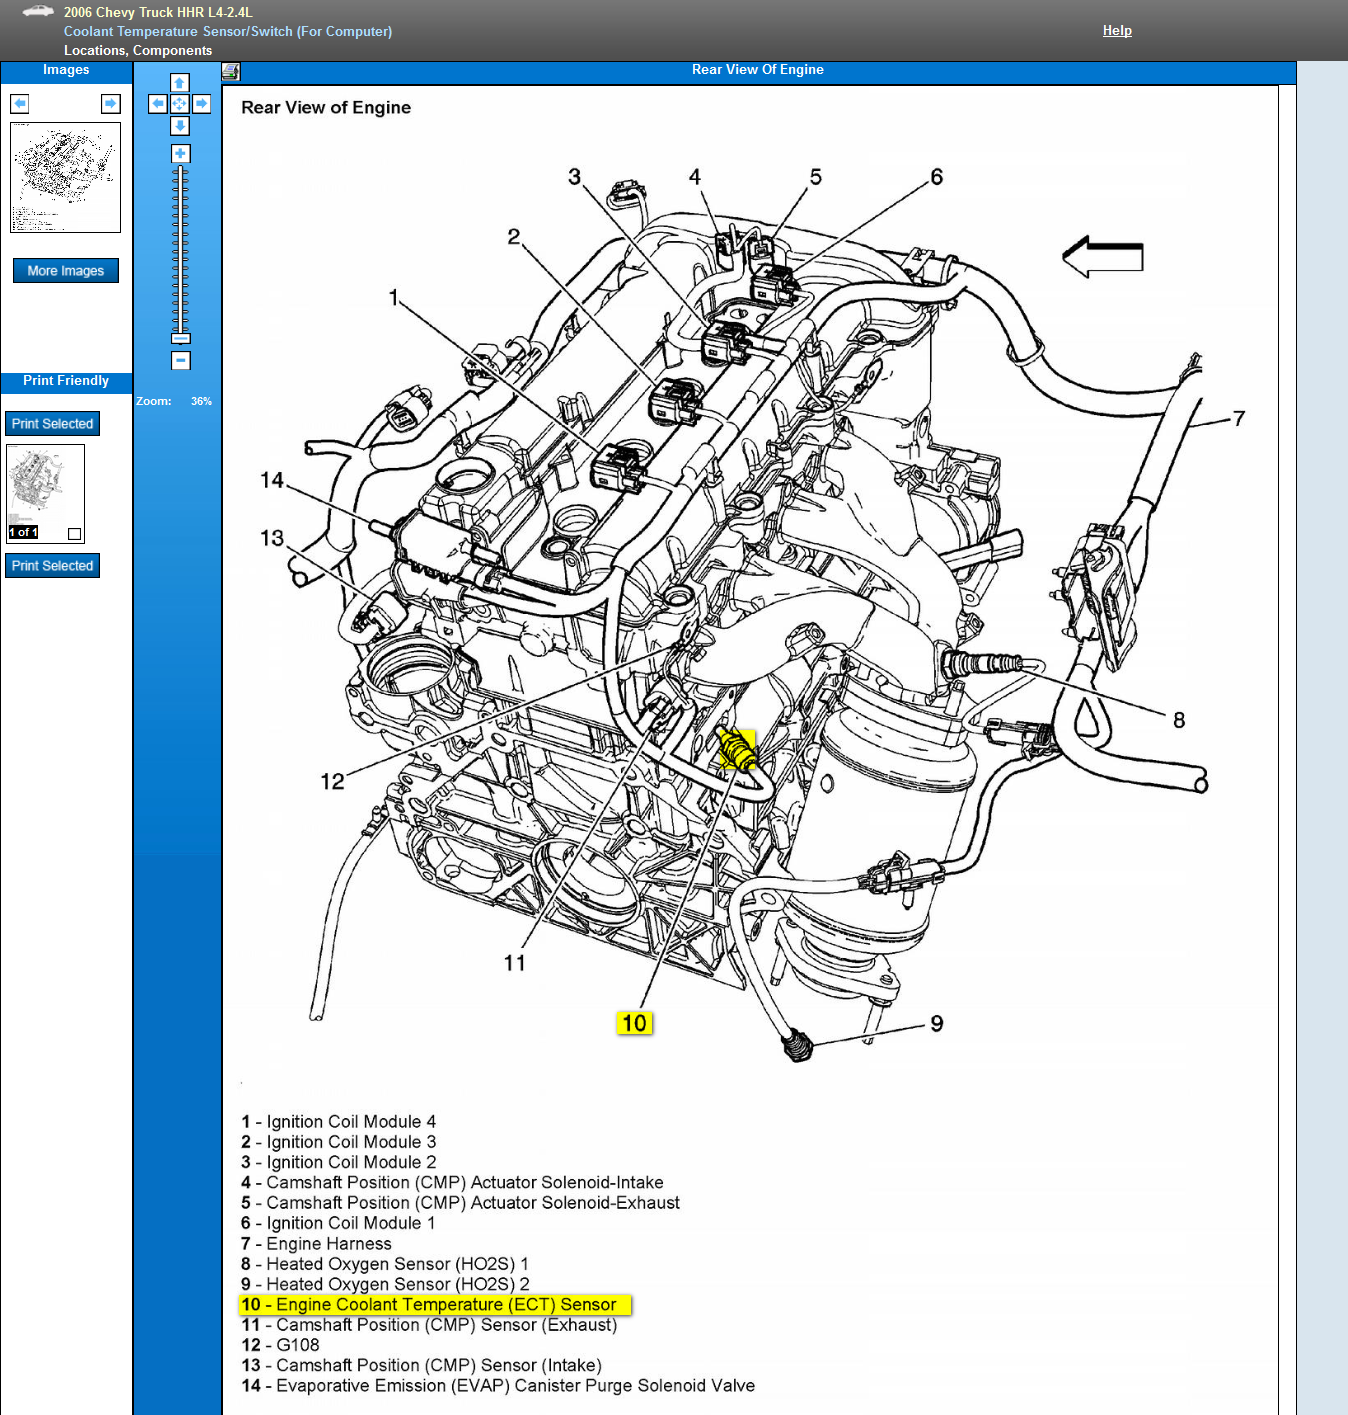 All Chevy 2010 chevy hhr problems : Im trying to figure out a problem I am having with my hhr 2006 it ...